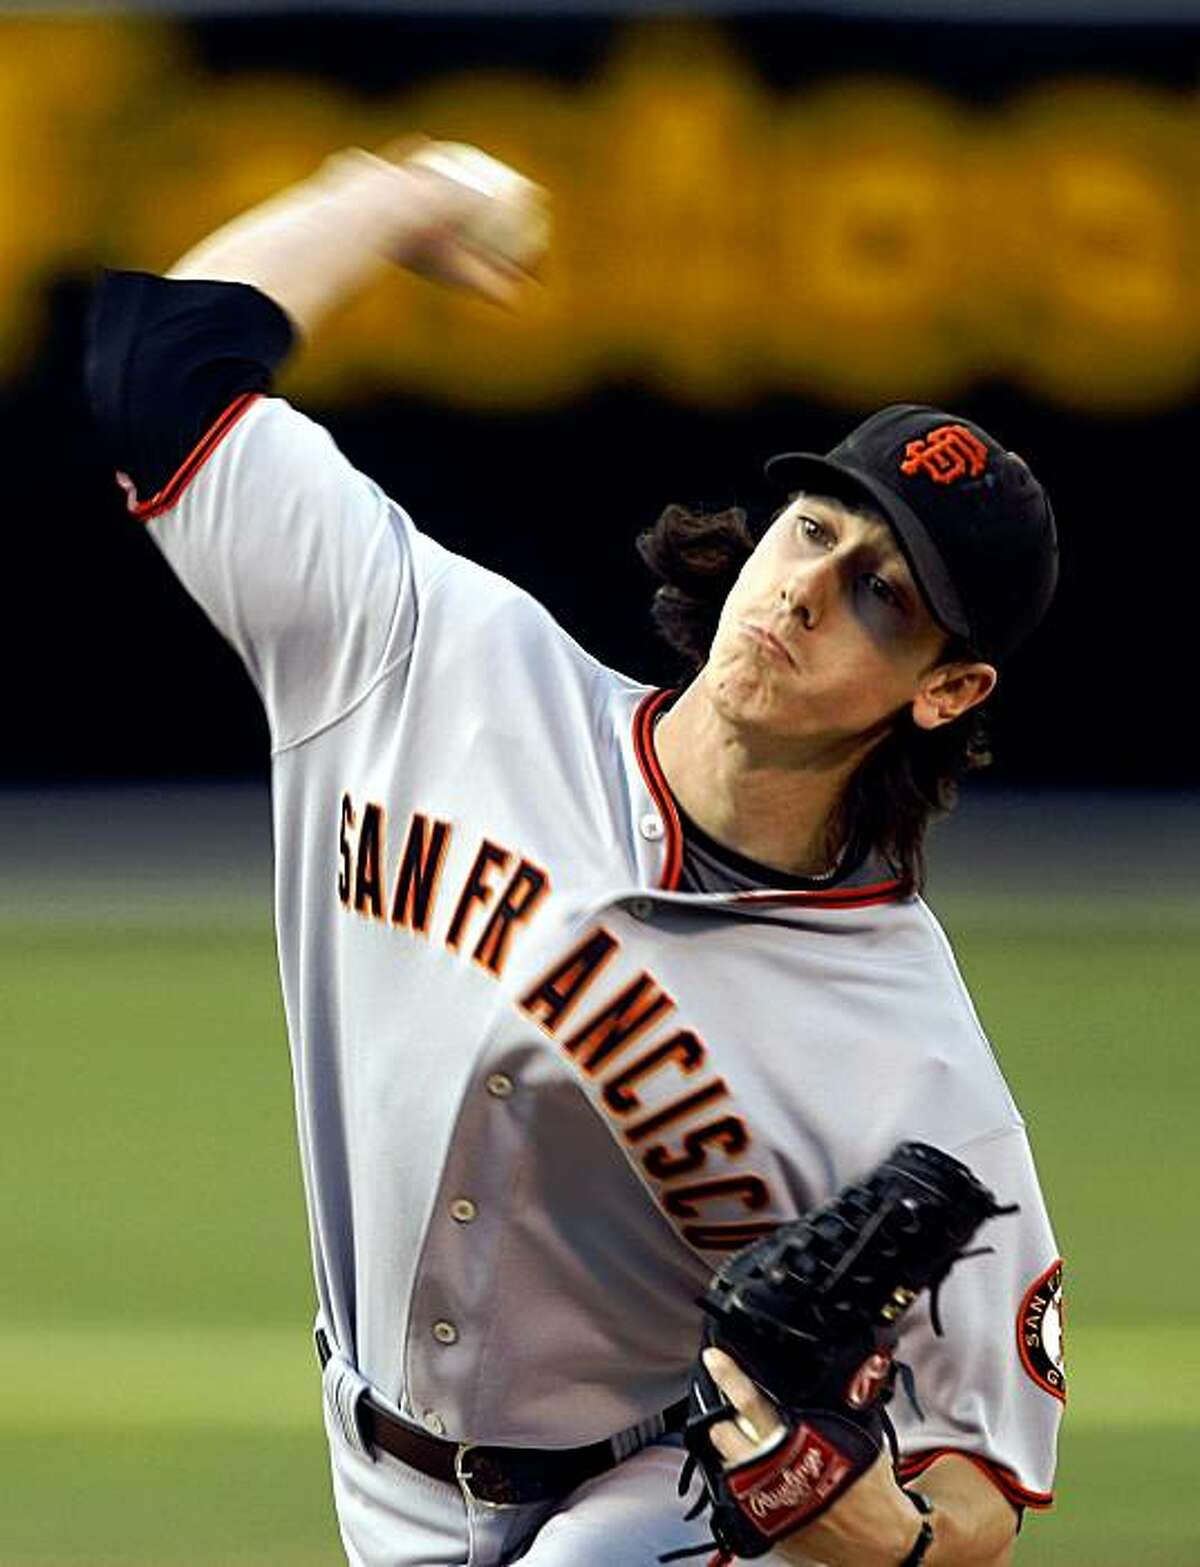 San Francsico starting pitcher Tim Lincecum. The San Francisco Giants take on the Oakland Athletics in the Battle of the Bay series on Tuesday June 23, 2009, in Oakland , Calif.